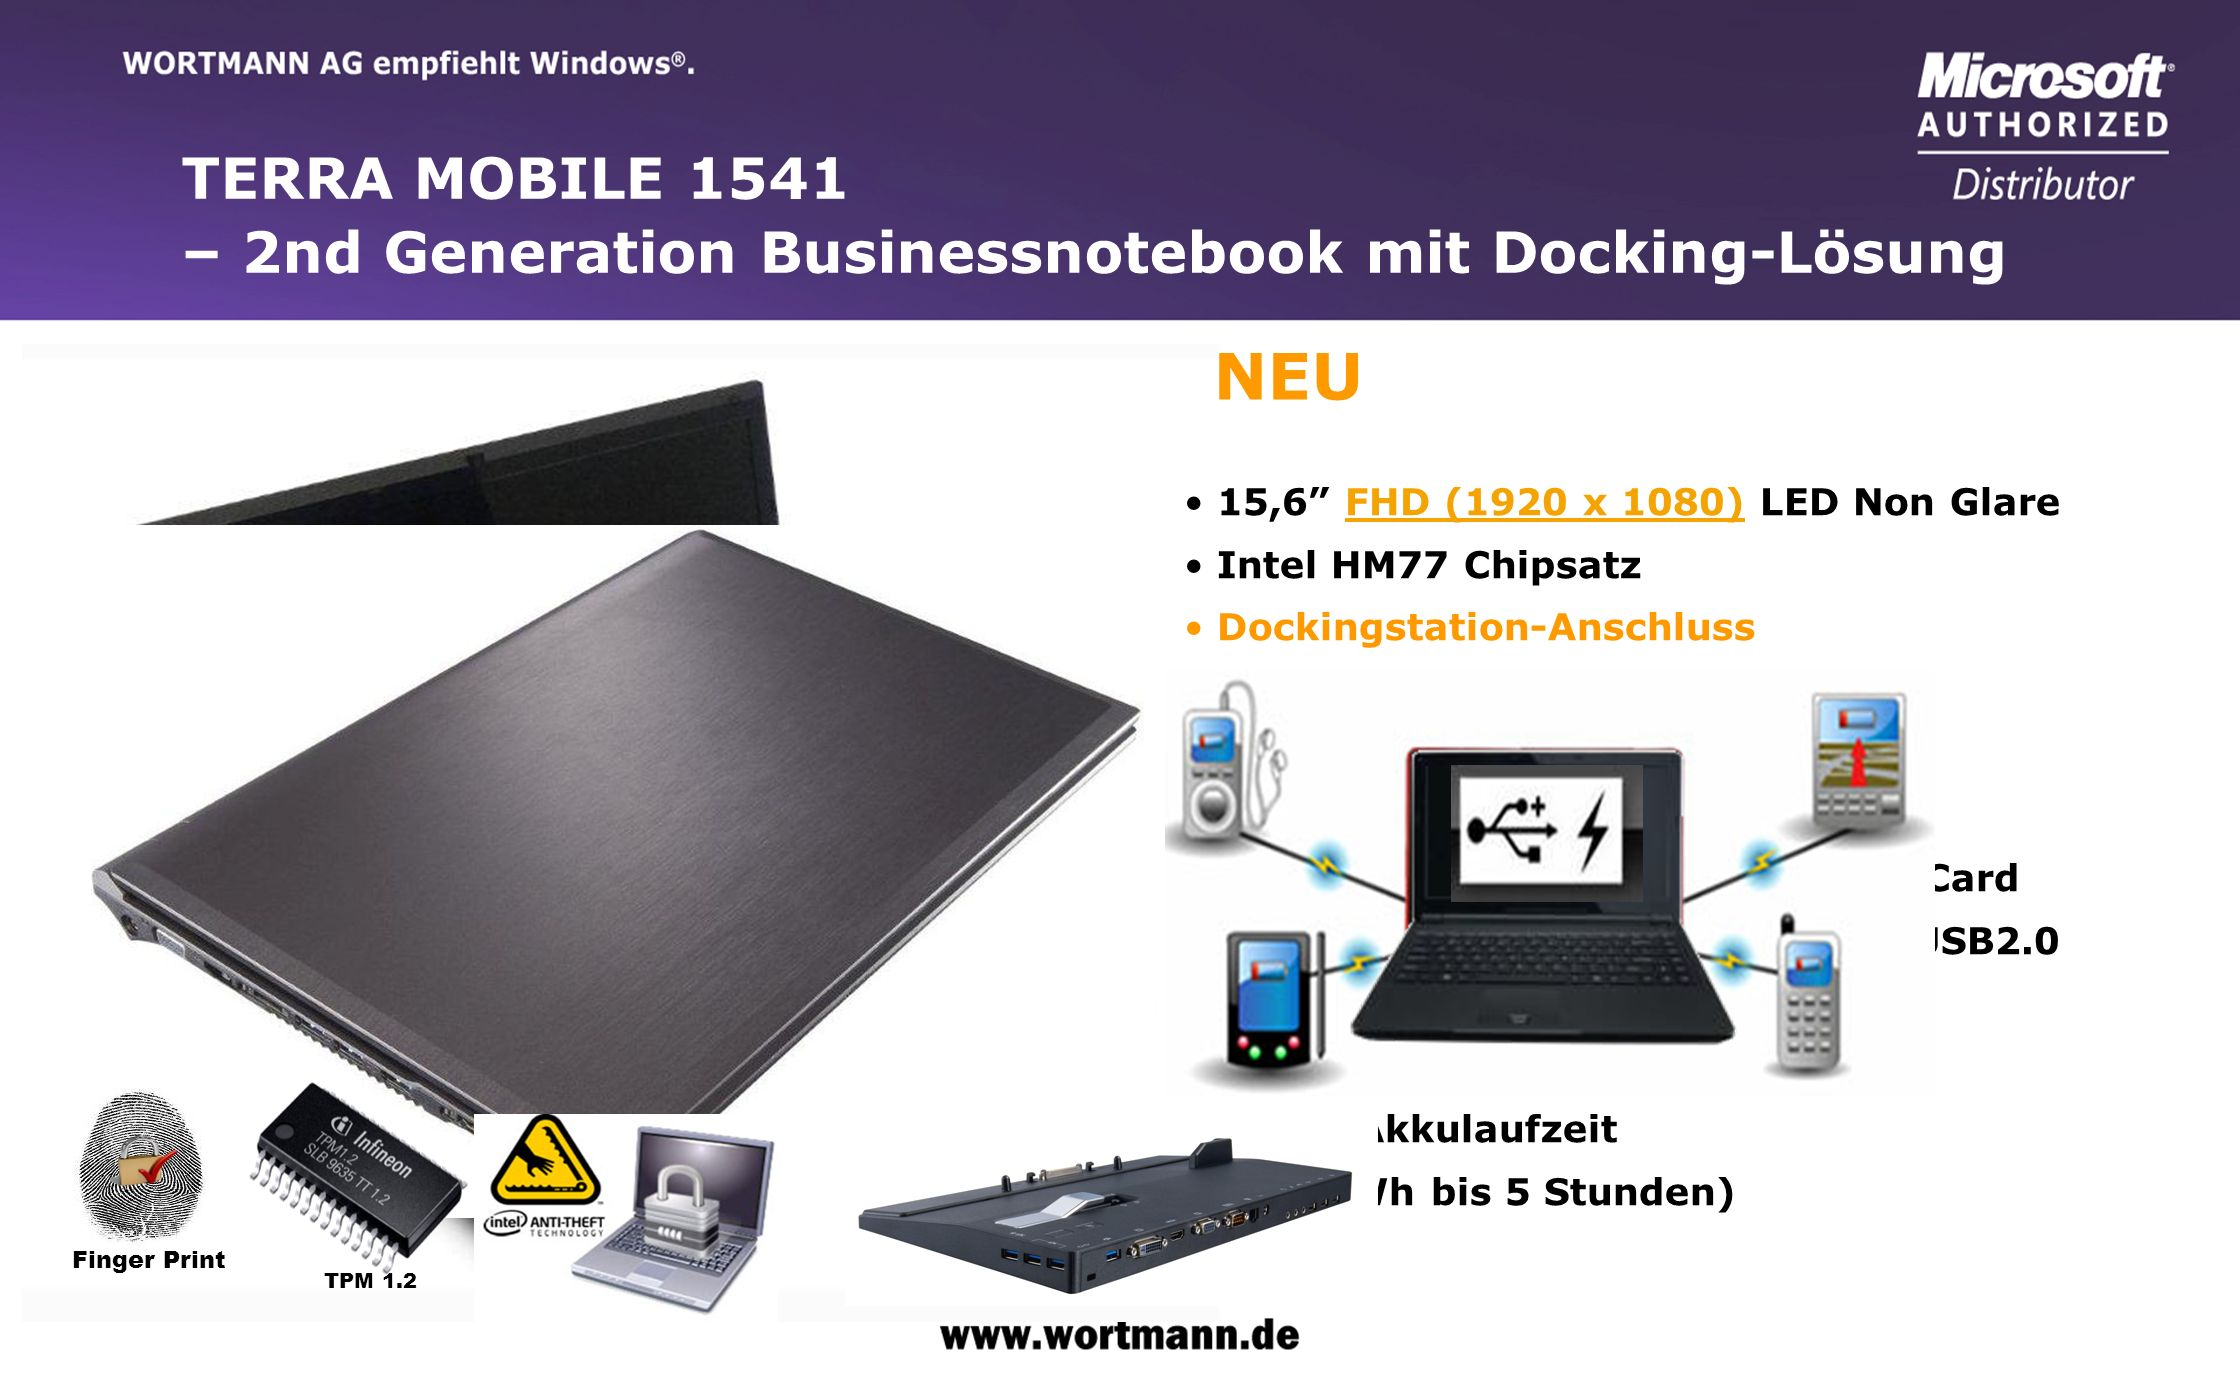 TERRA MOBILE 1541 – 2nd Generation Businessnotebook mit Docking-Lösung. NEU. 15,6 FHD (1920 x 1080) LED Non Glare.